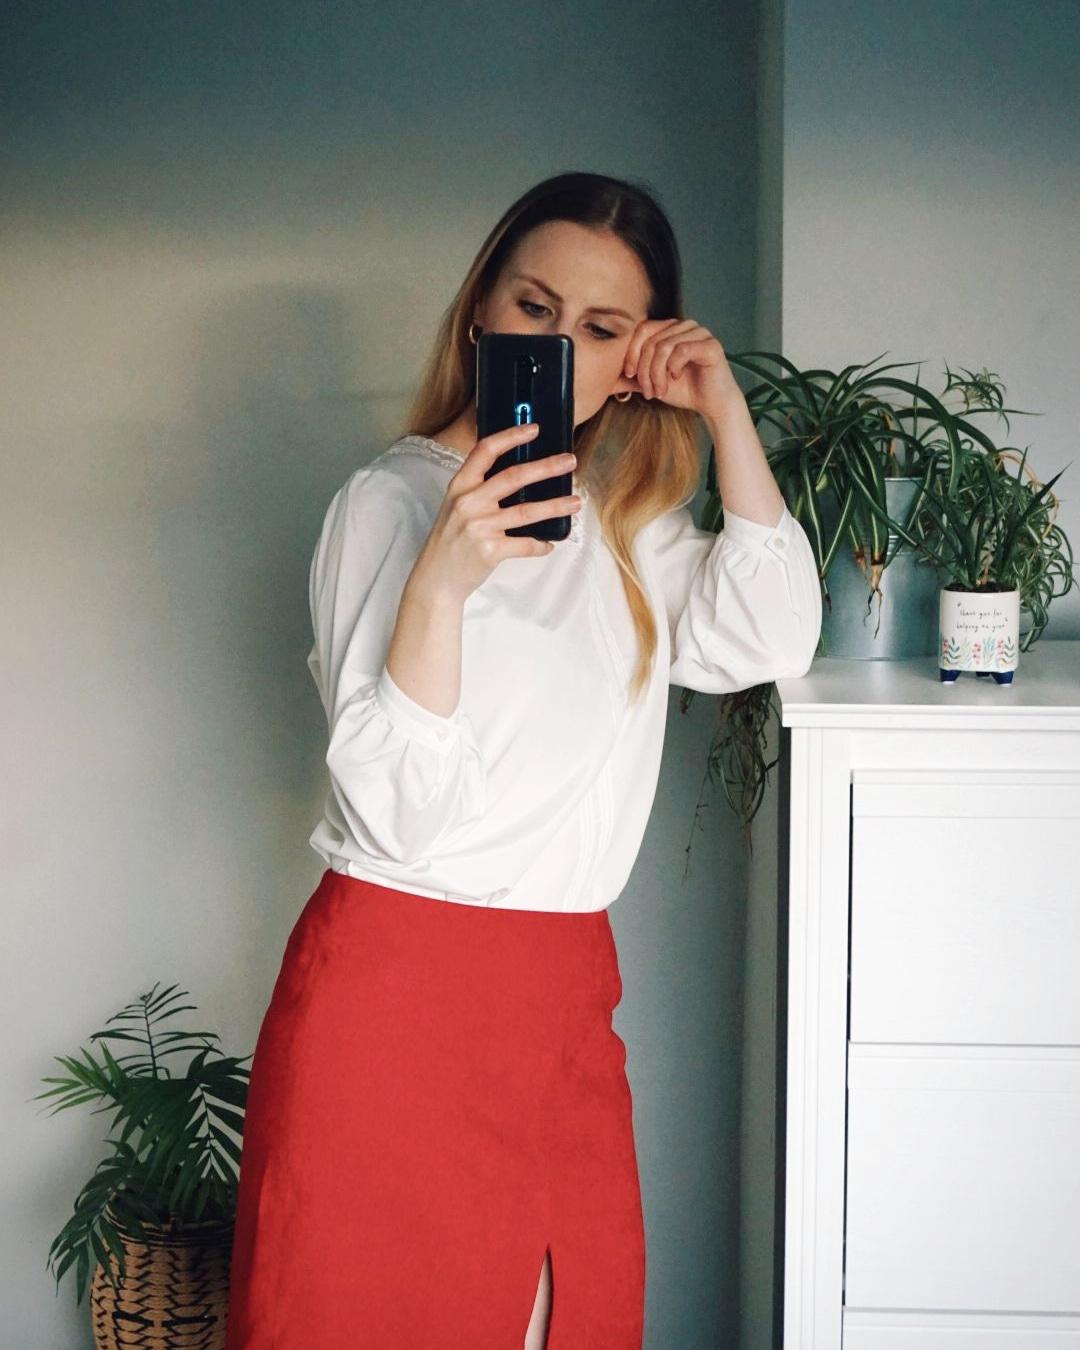 Amy is wearing a white blouse tucked into a red suede skirt